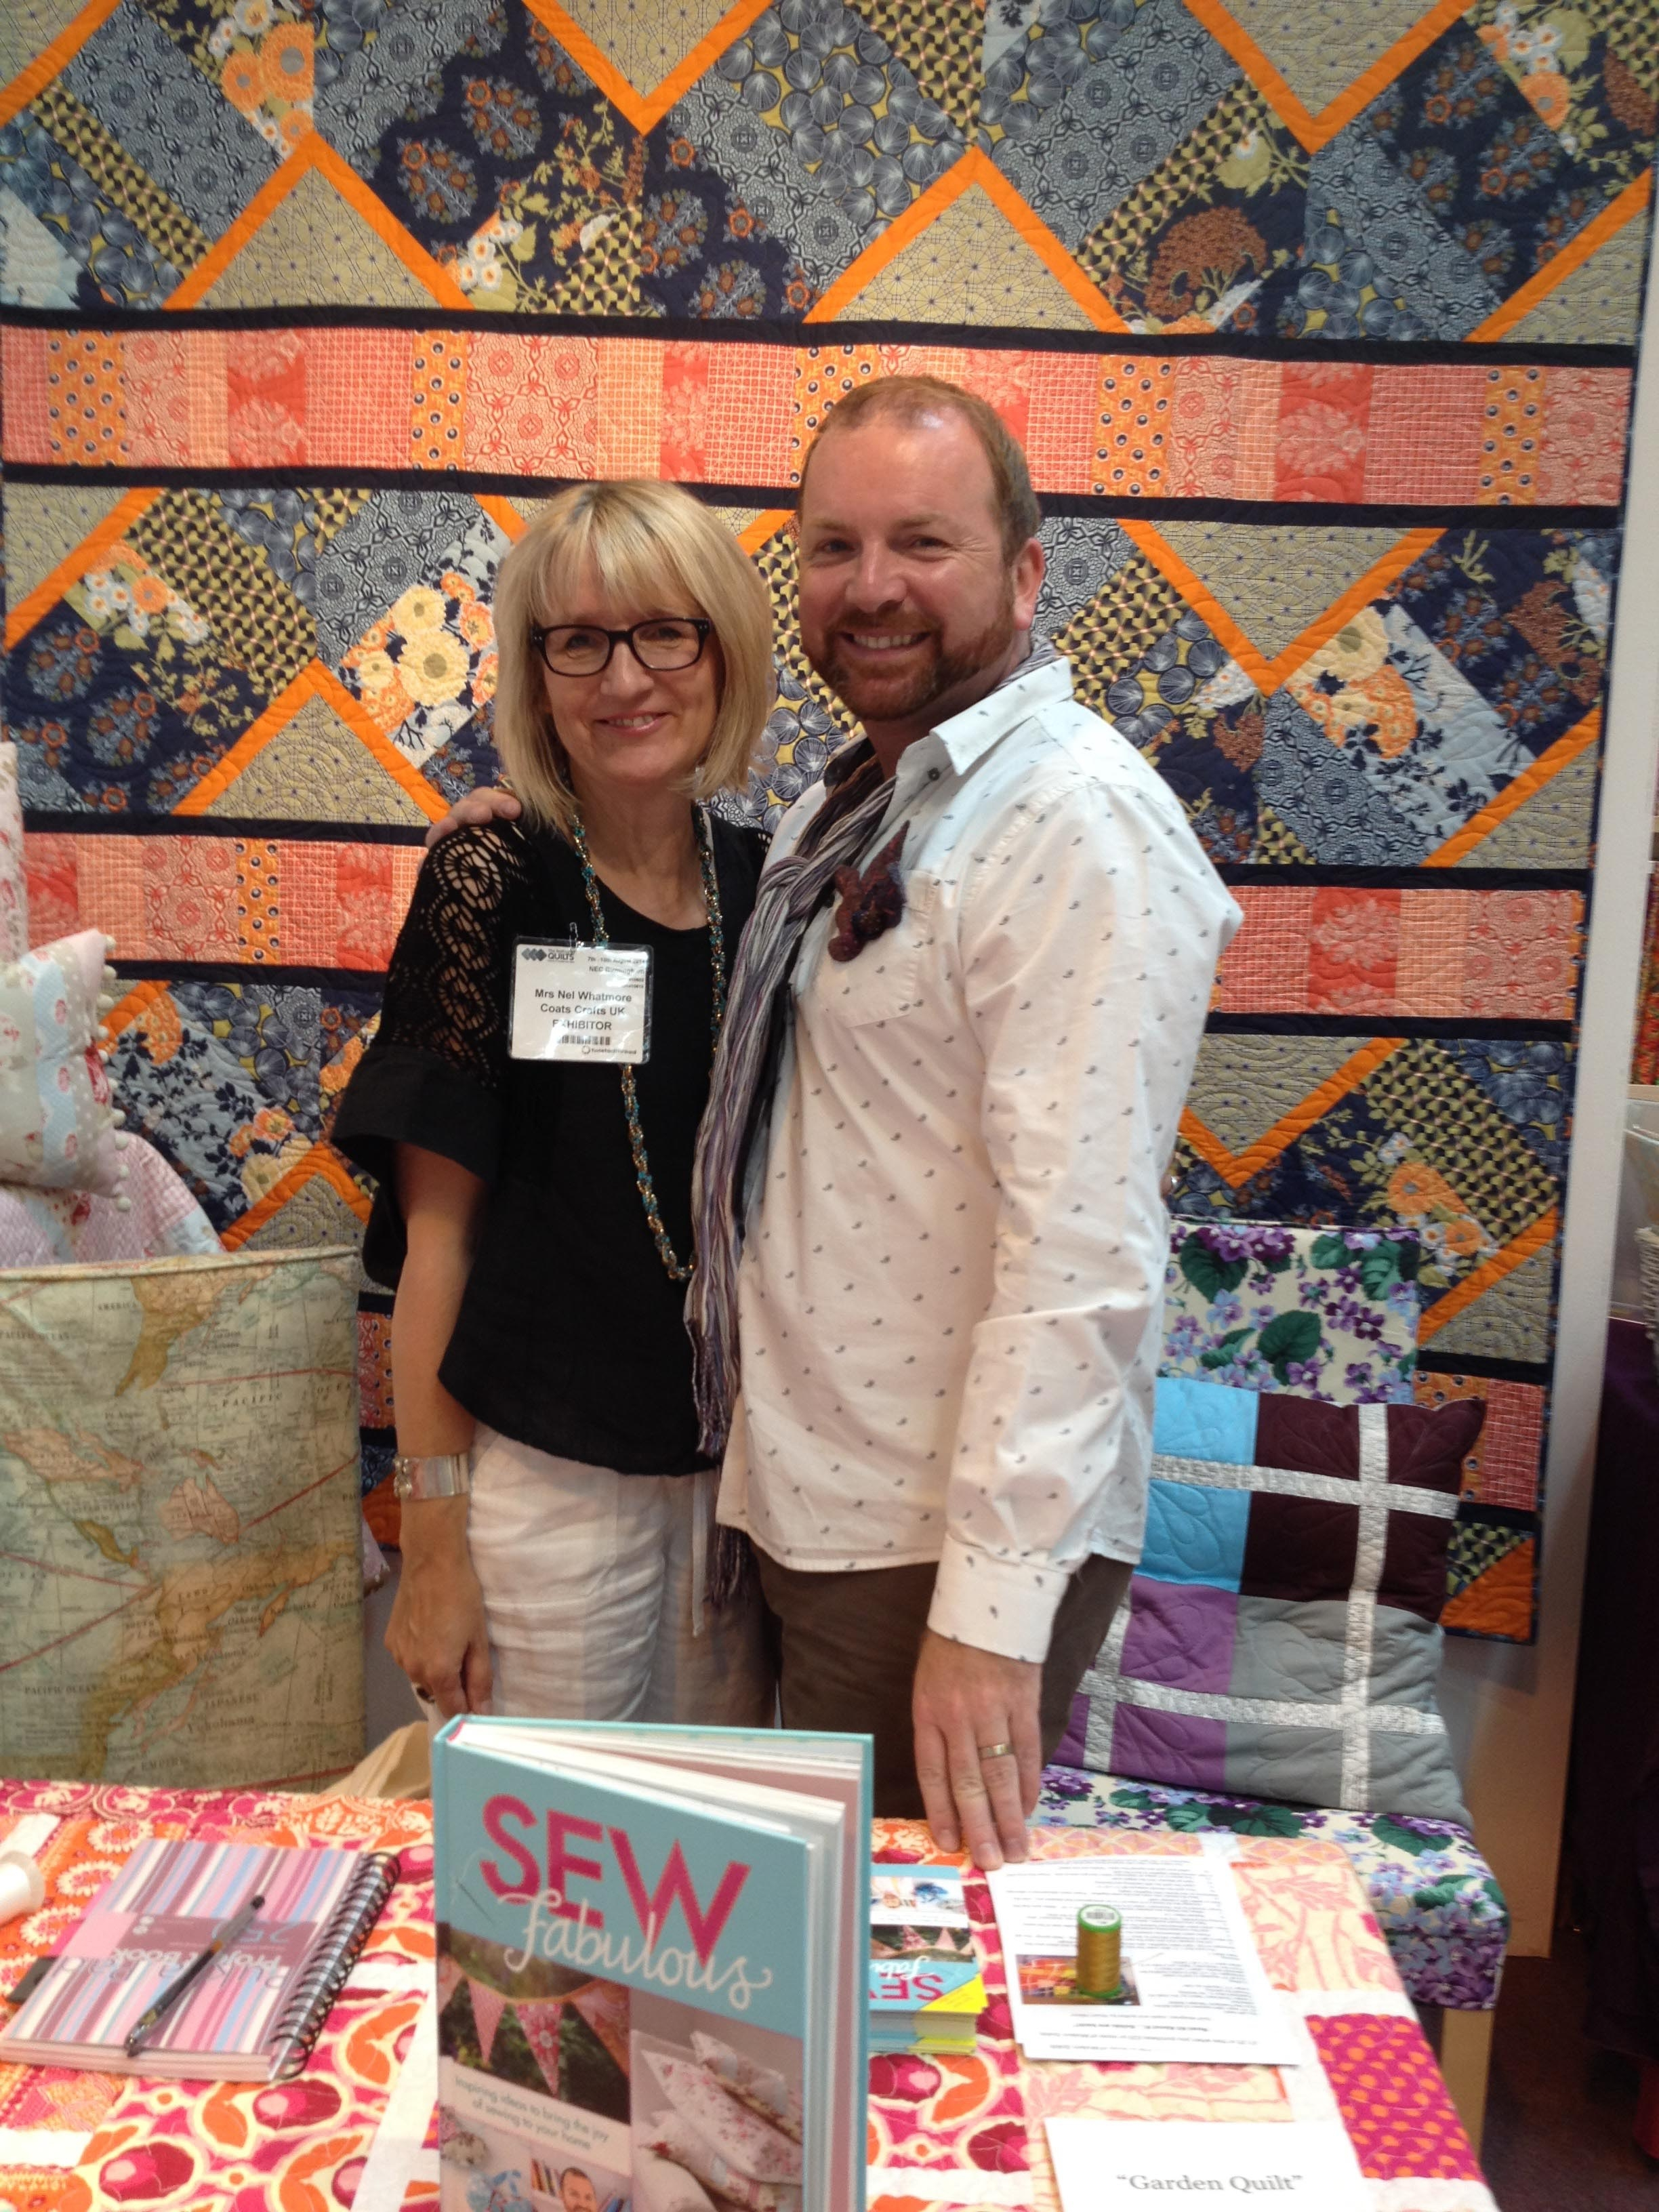 Having fun at the International Festival of Quilts at the NEC, Birmingham